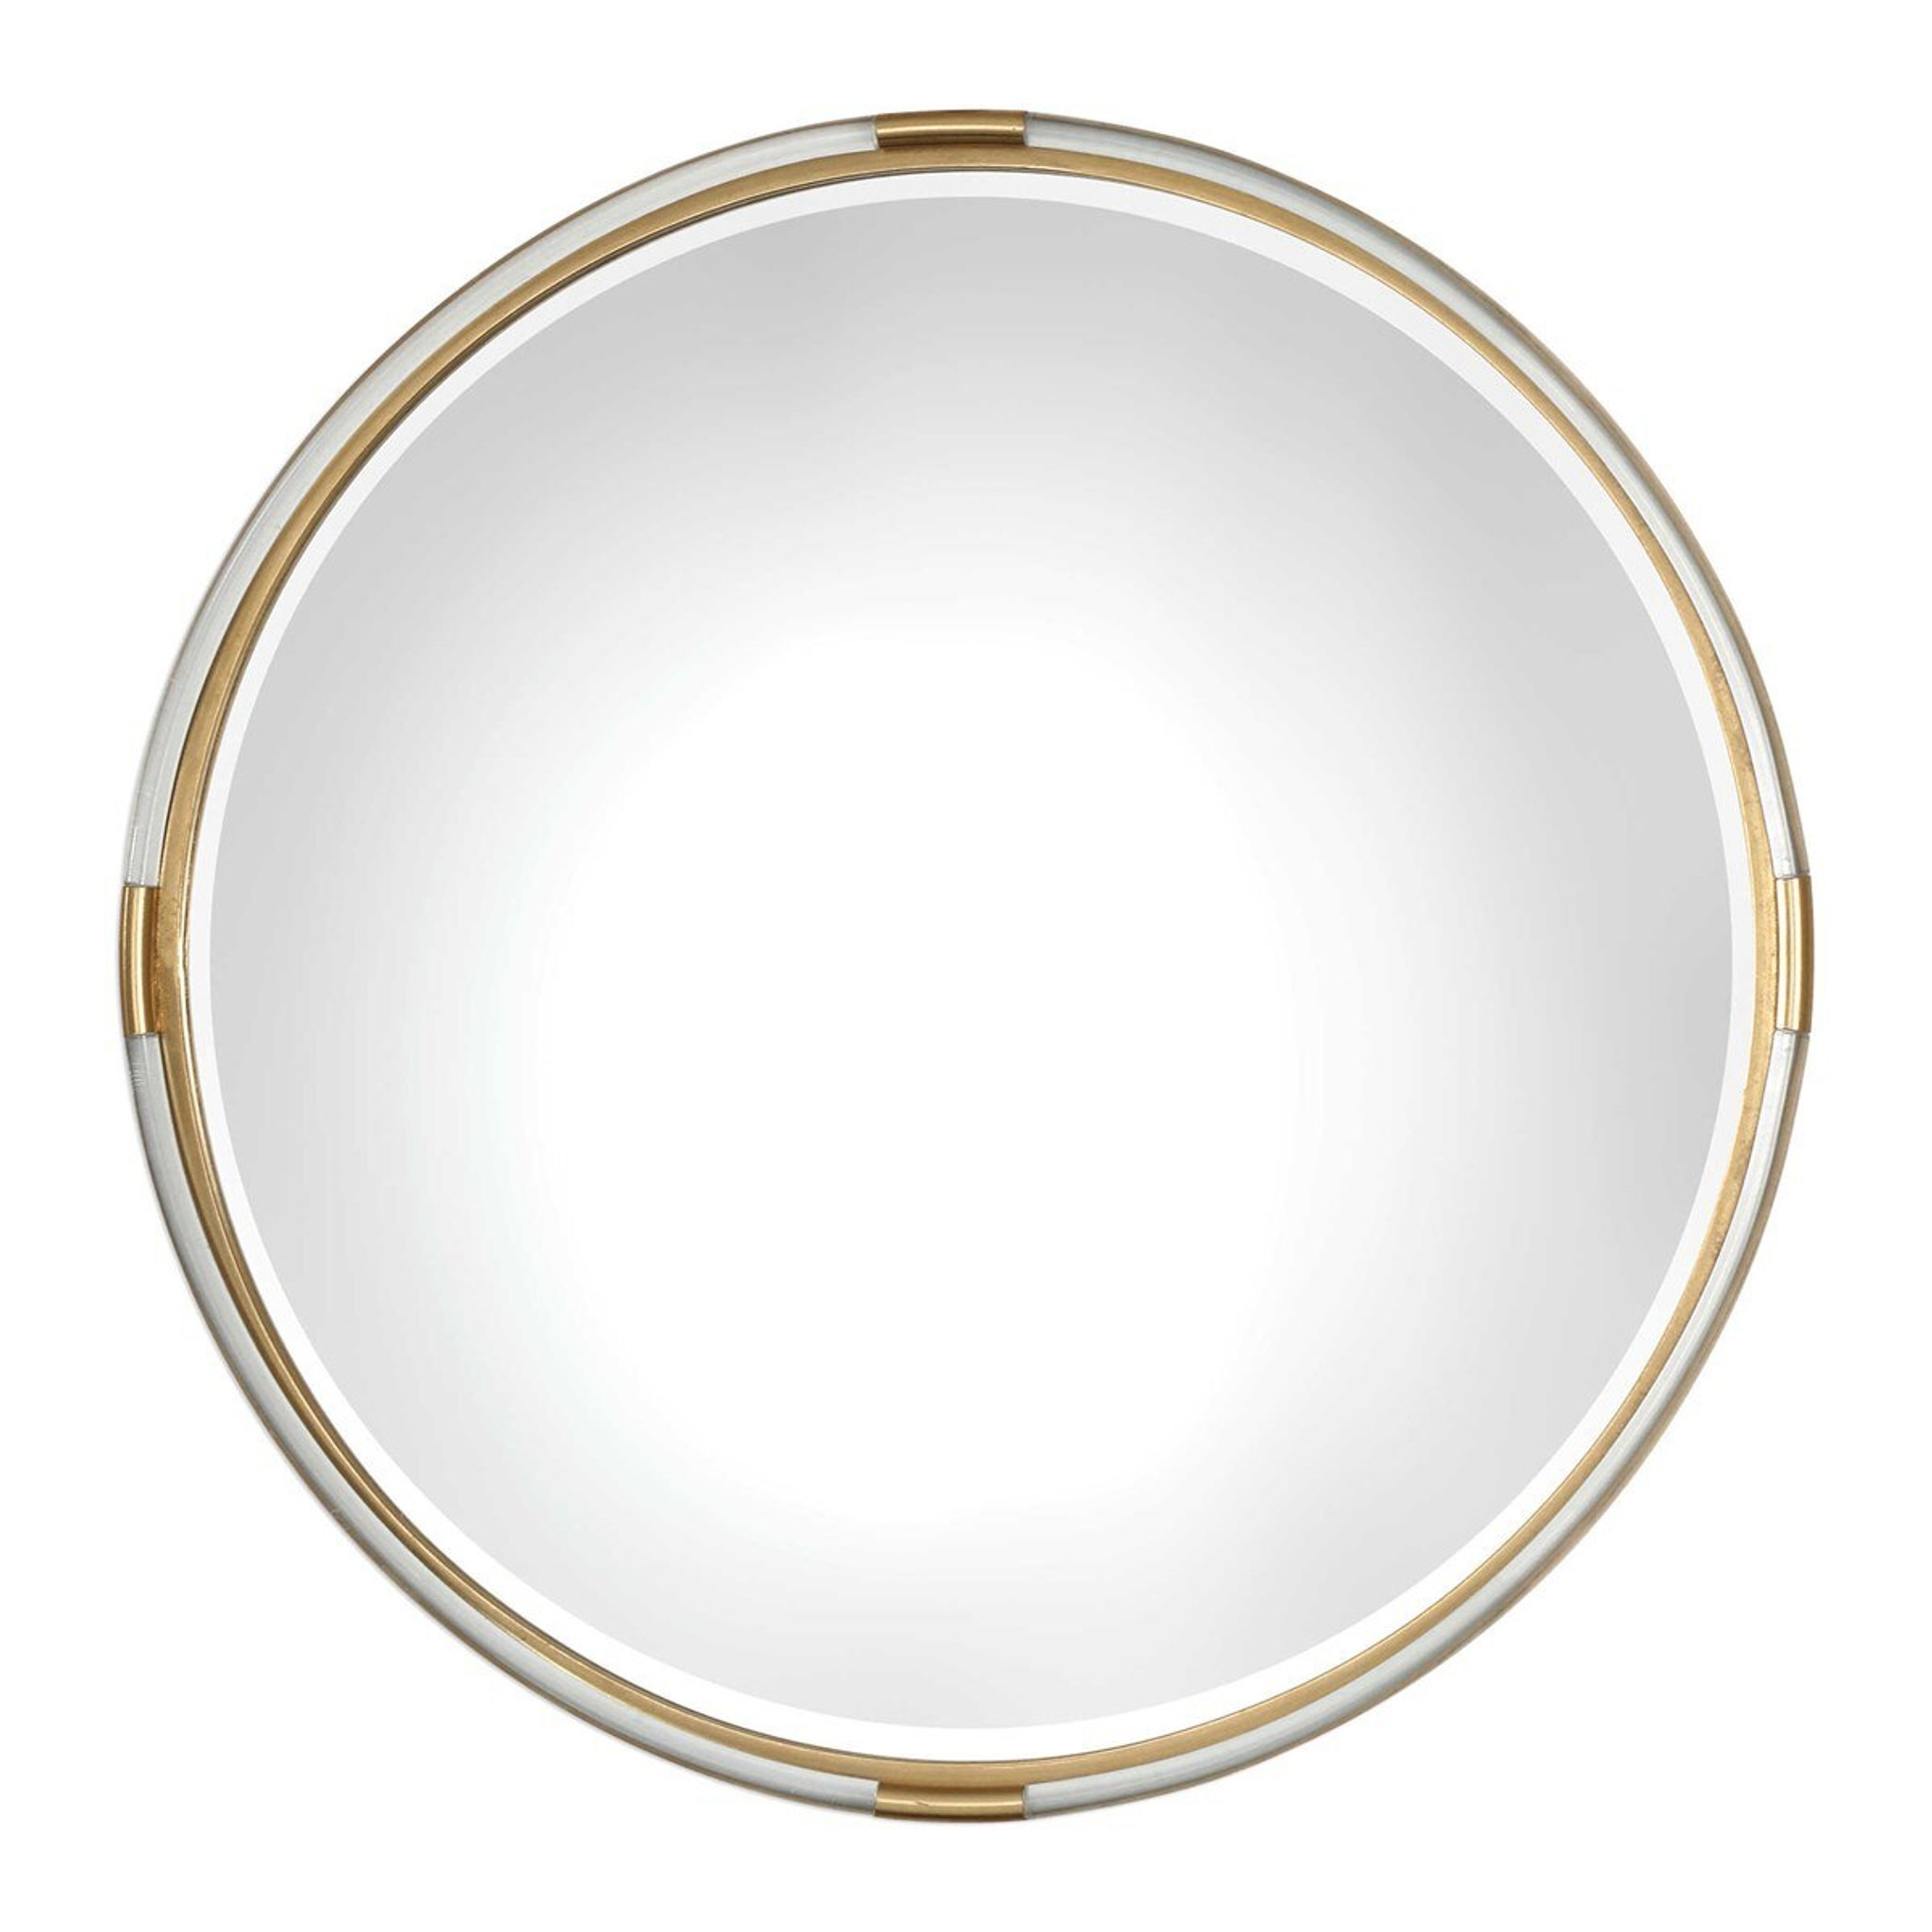 Gold And Acrylic Round Mirror Clear Home Design